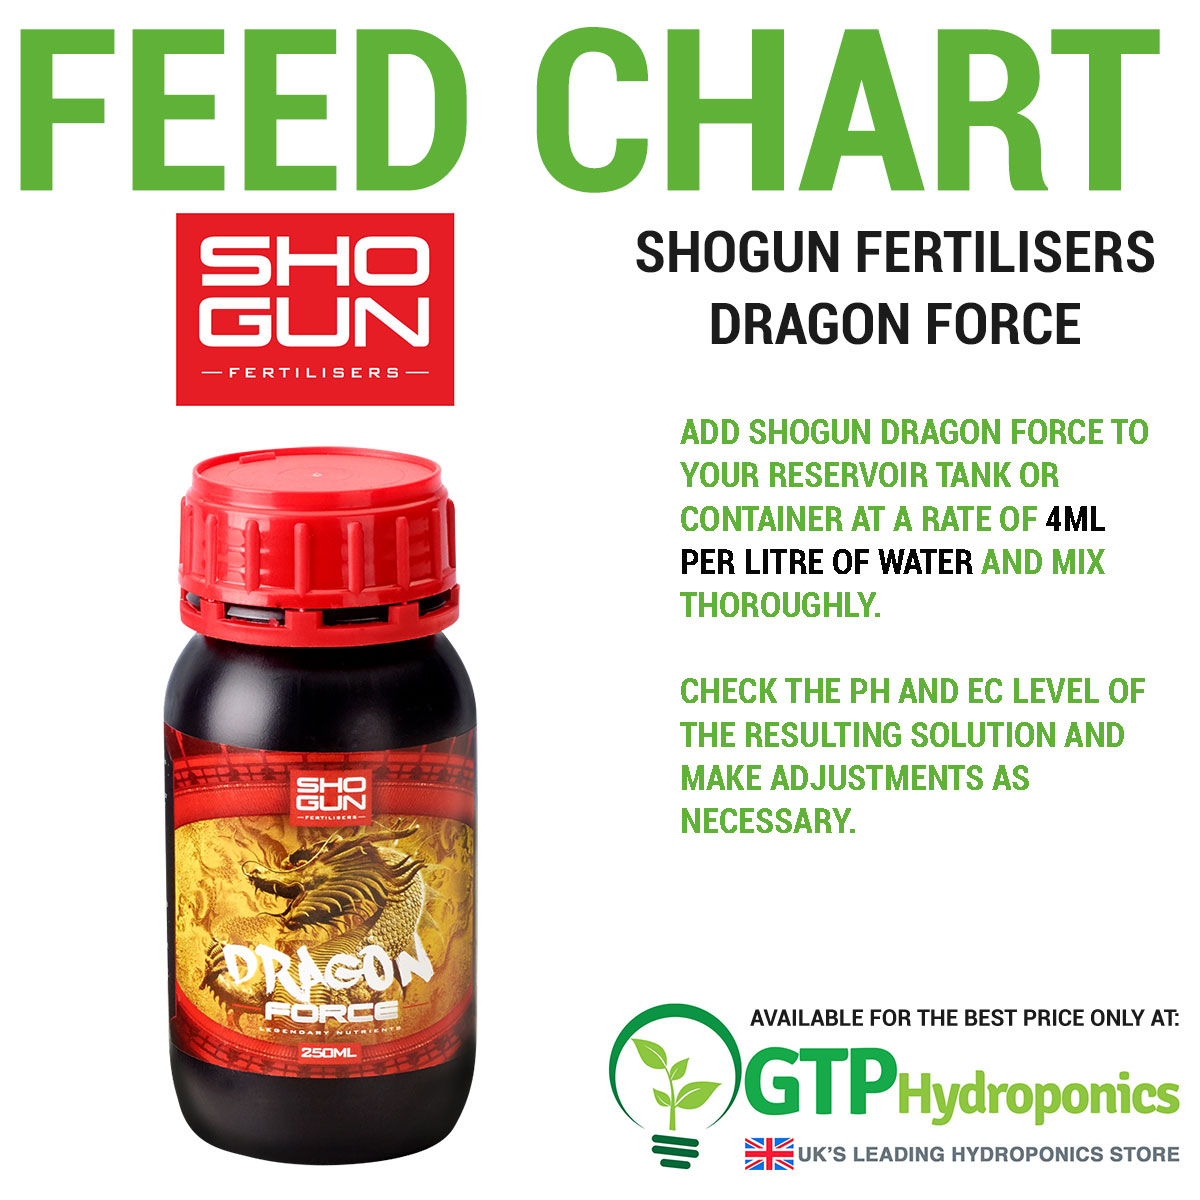 Shogun Fertilisers Dragon Force